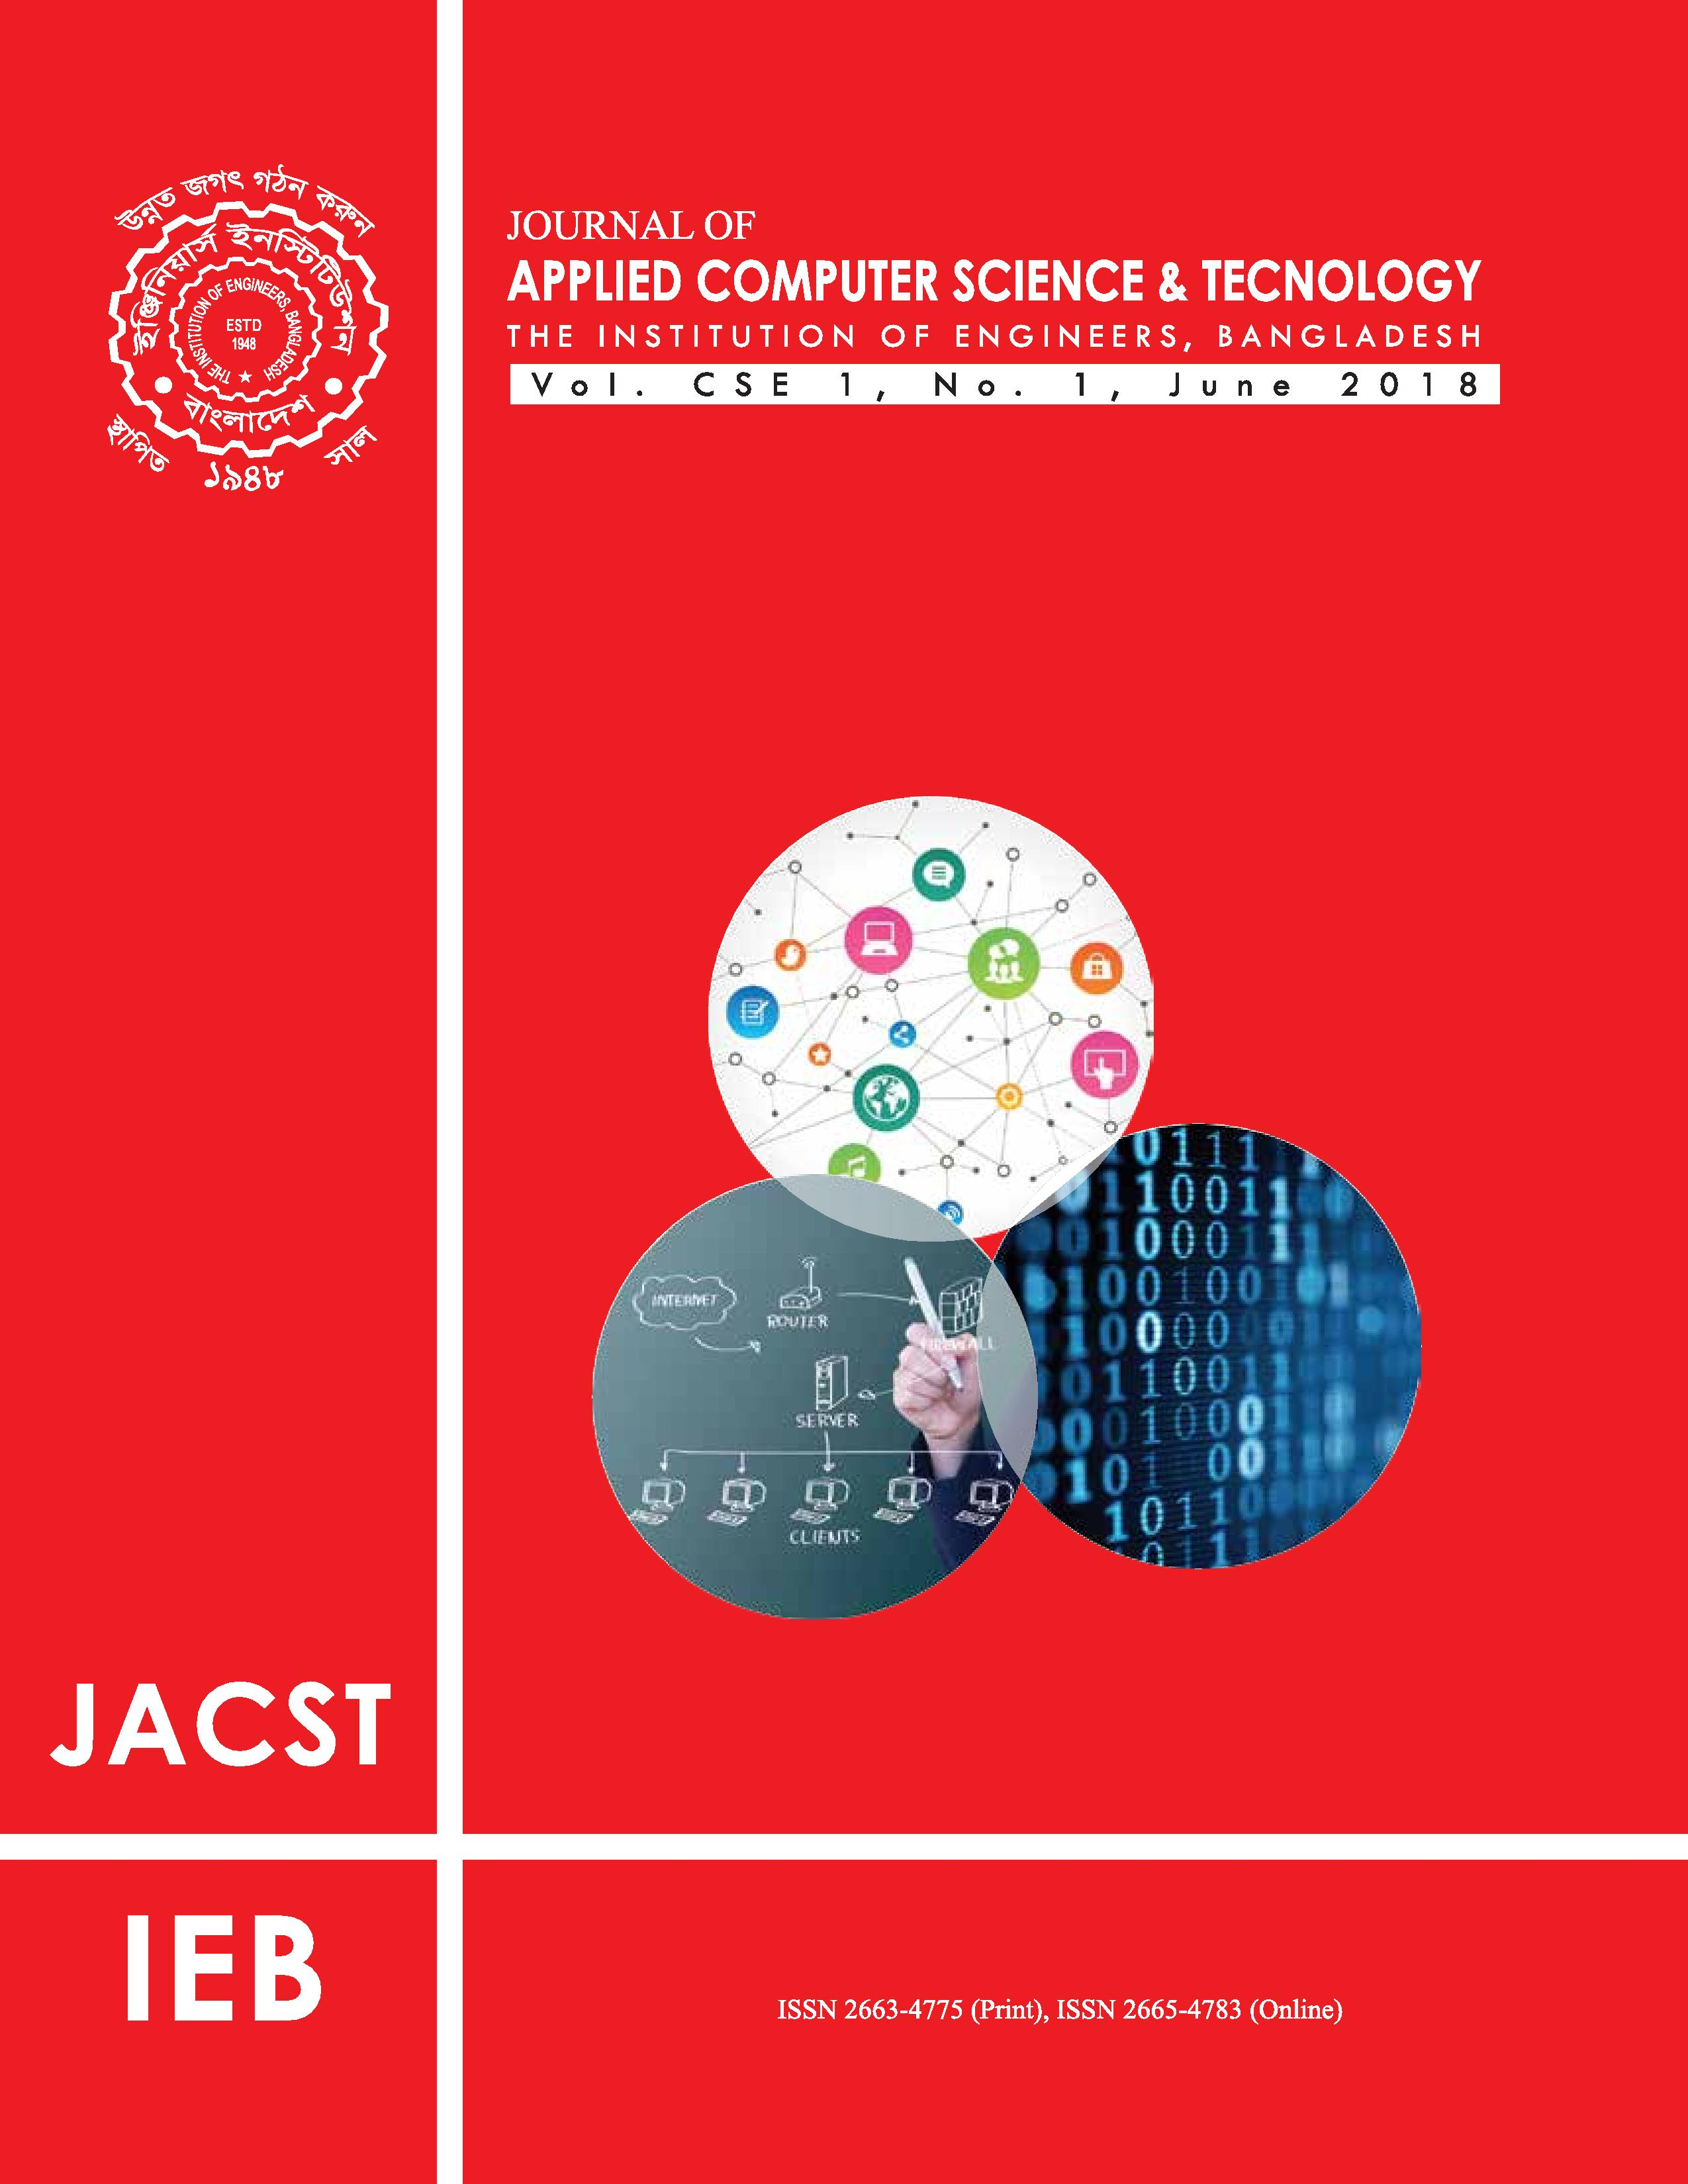 Journal of Applied Computer Science & Technology Vol 1, CSE 1, No. 1, June 2018